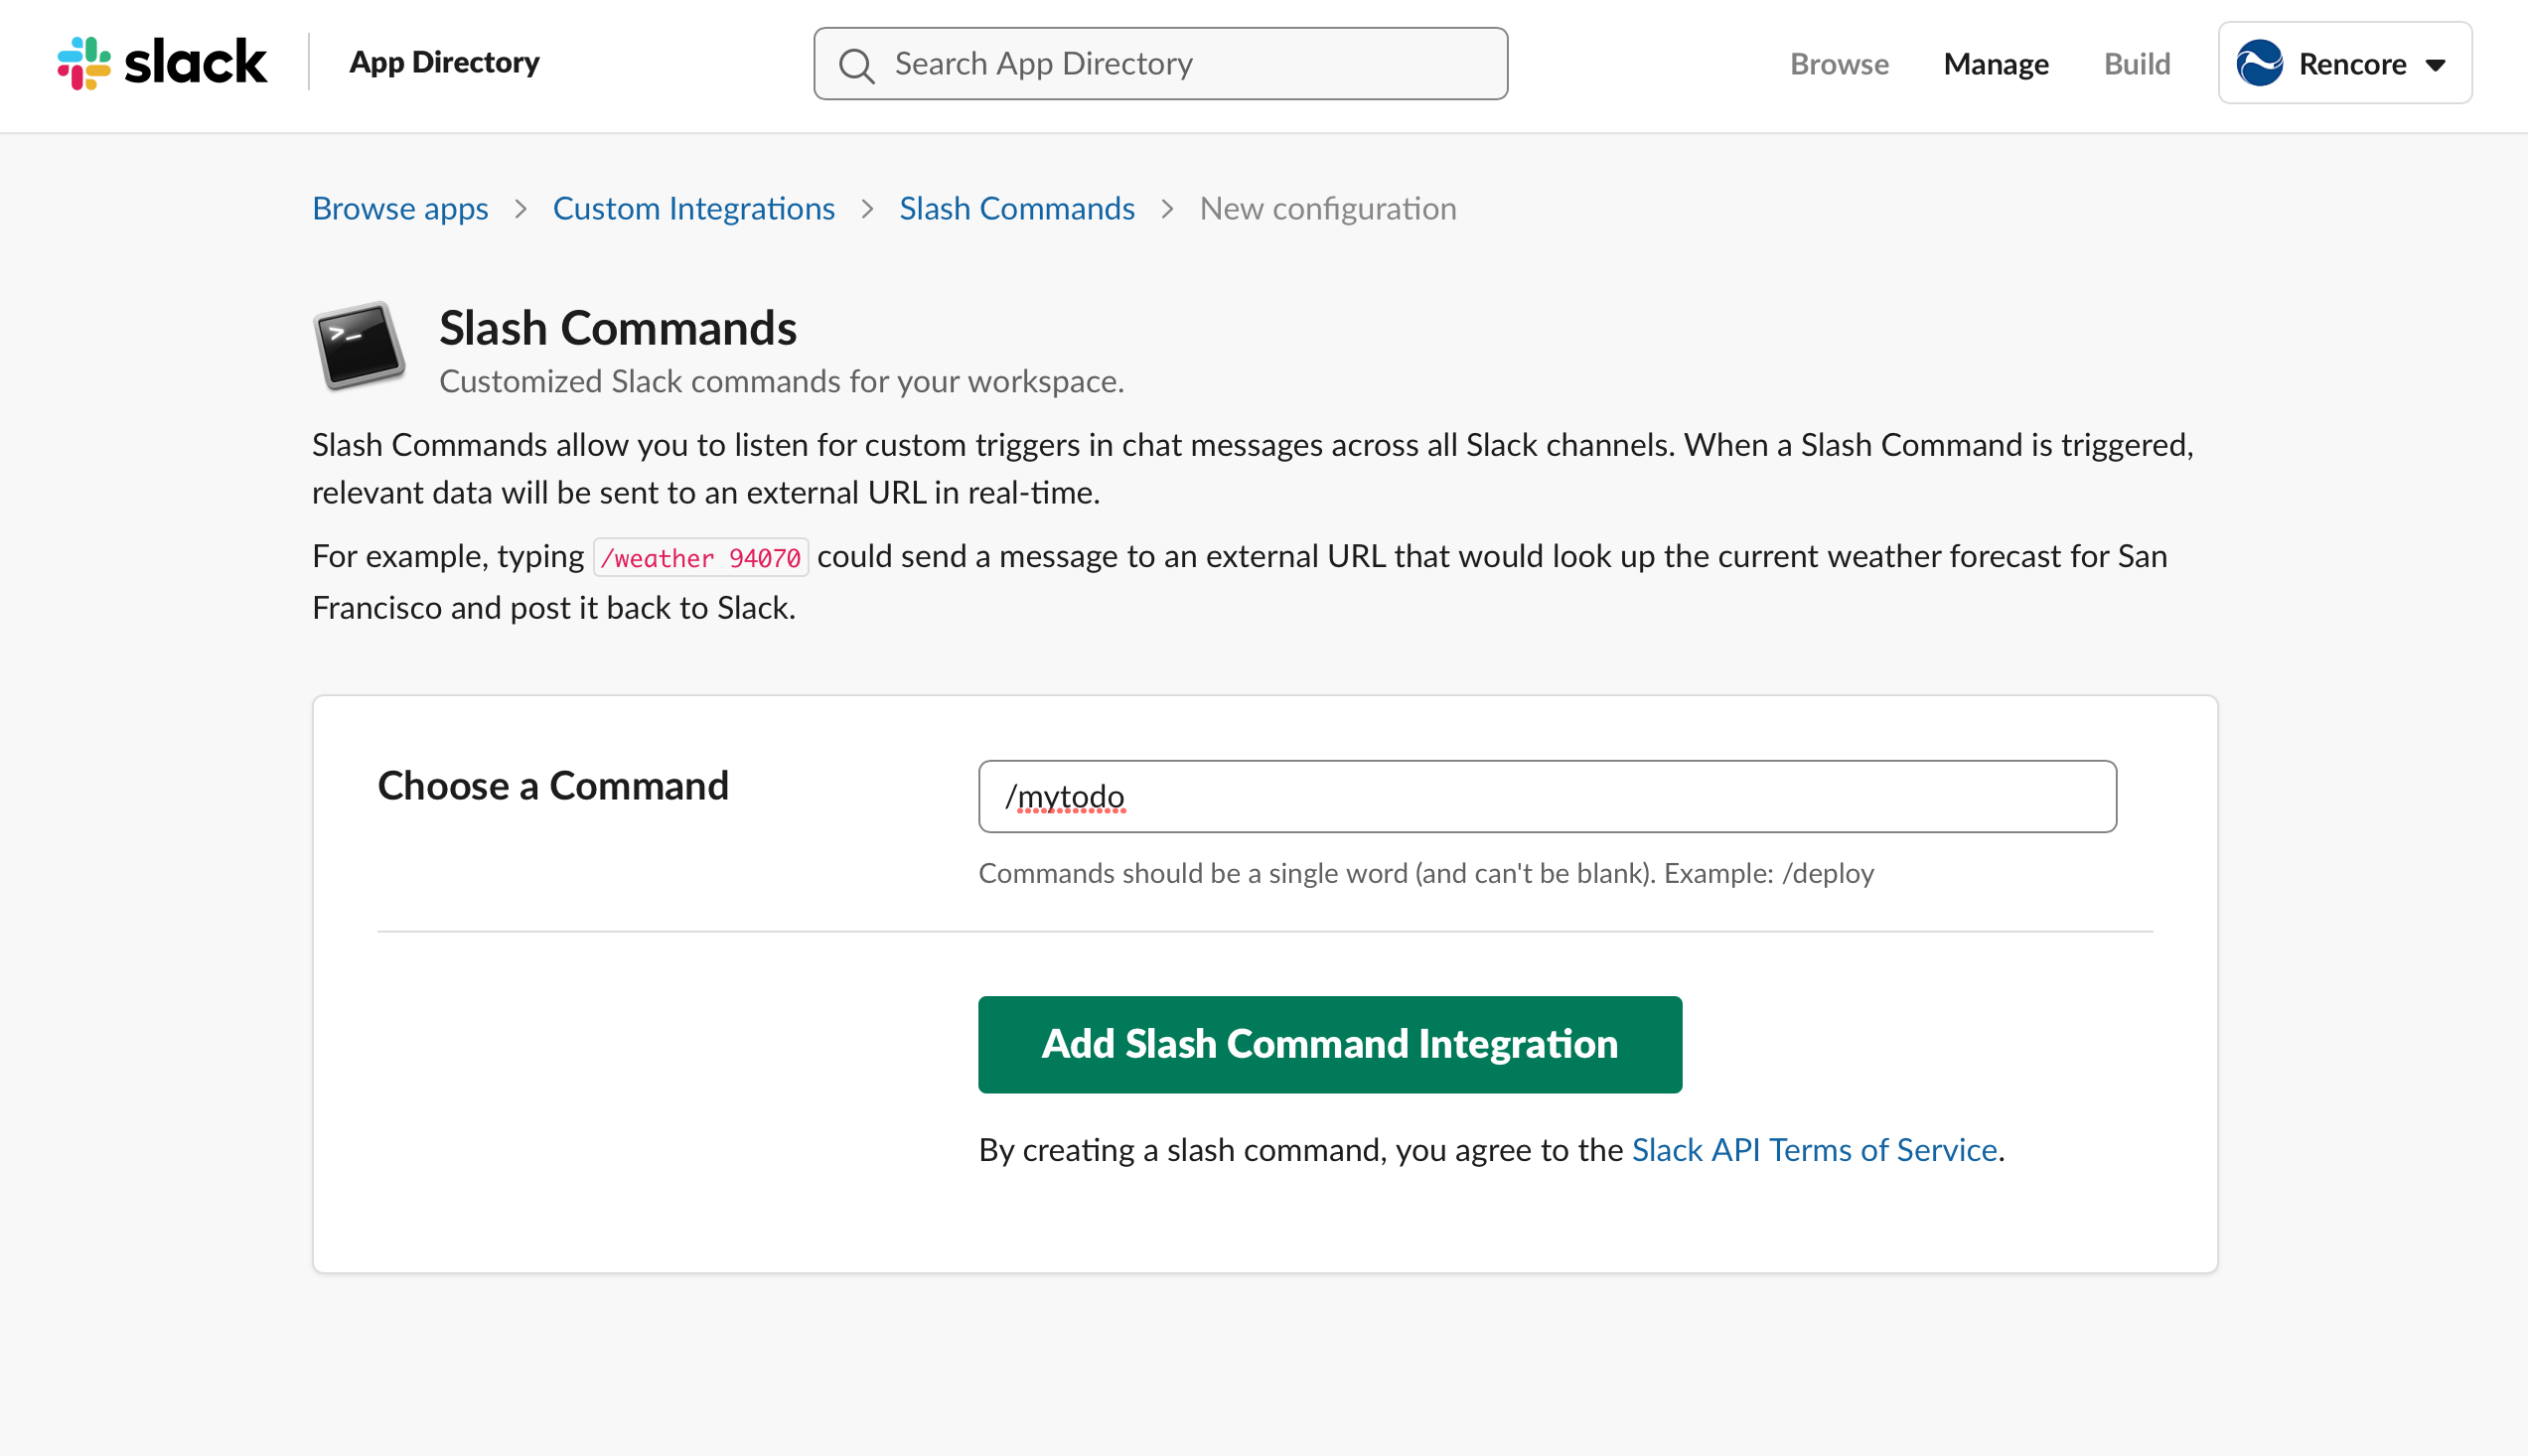 Adding new configuration in the Slash Commands app